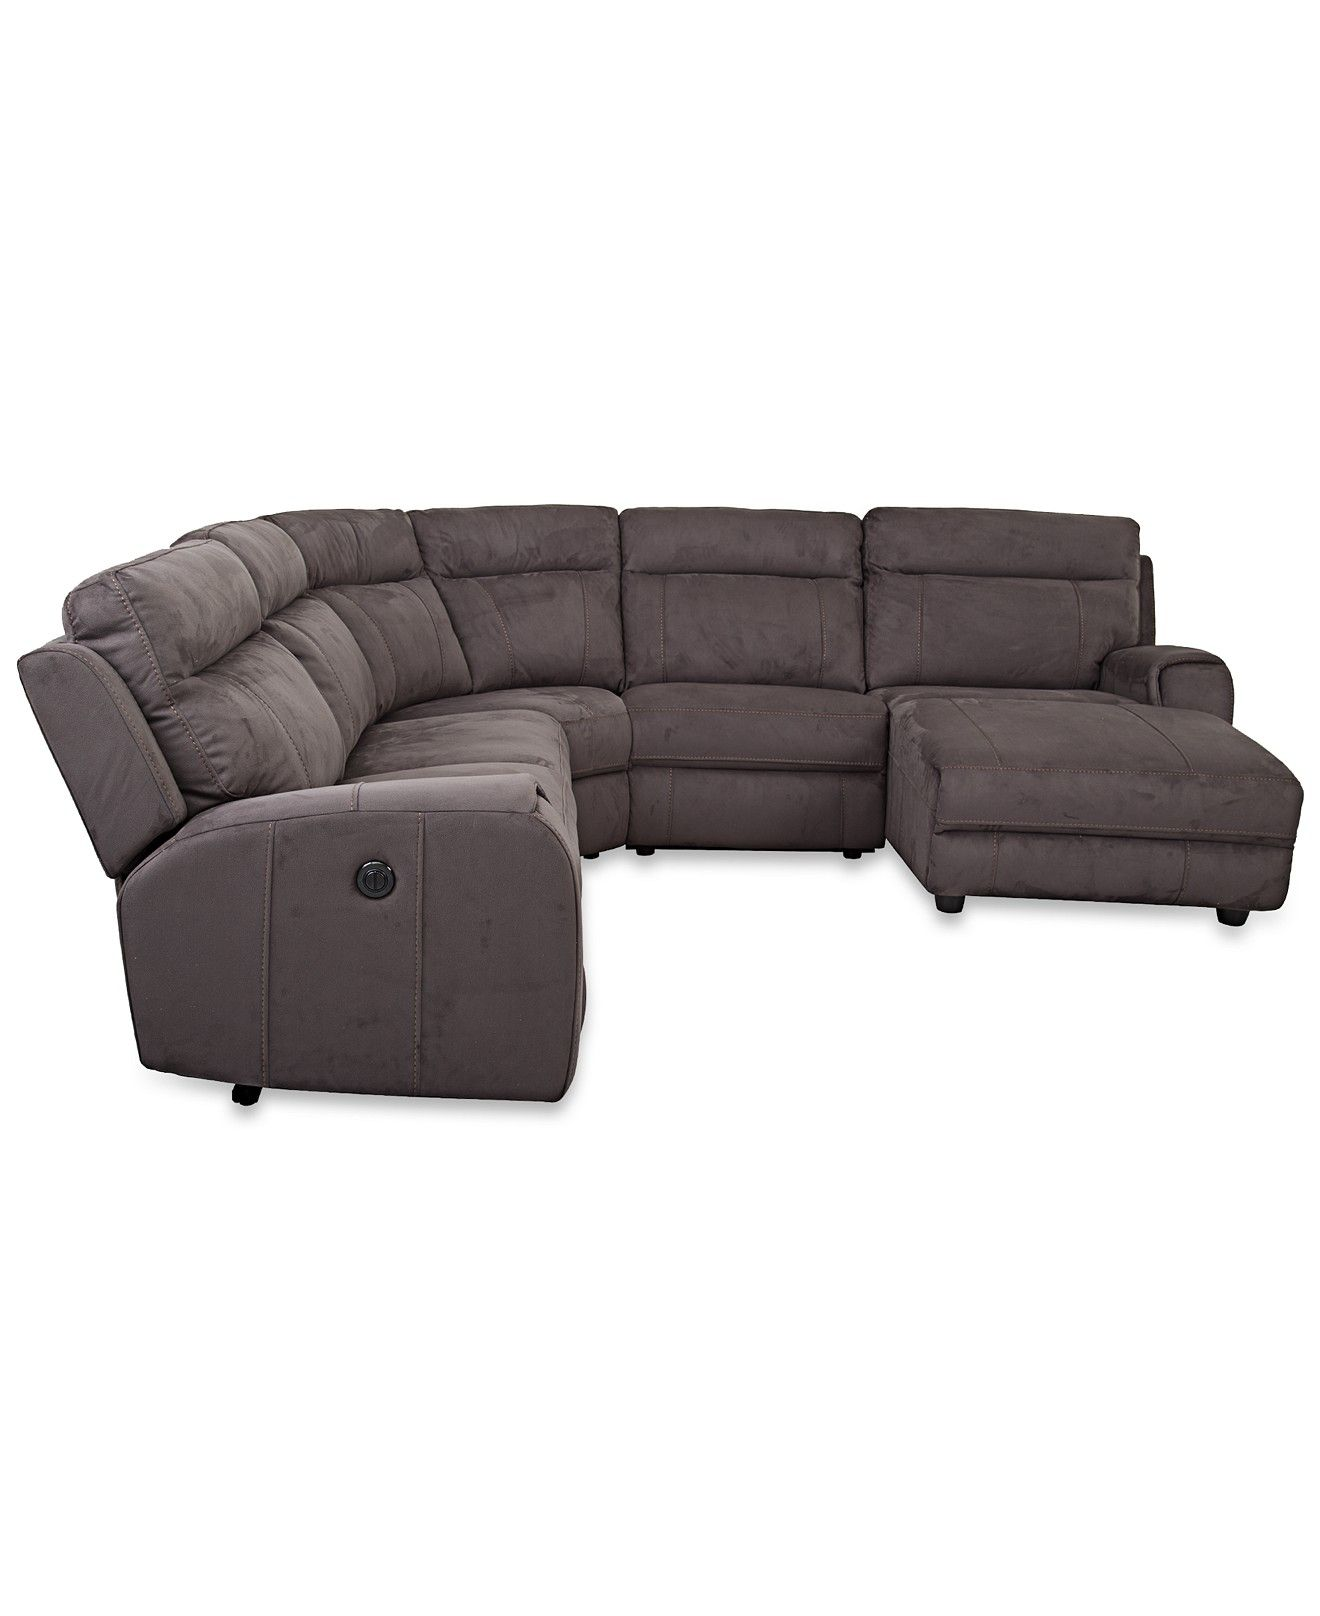 Torie 5 Piece Sectional With 2 Power Motion Recliners